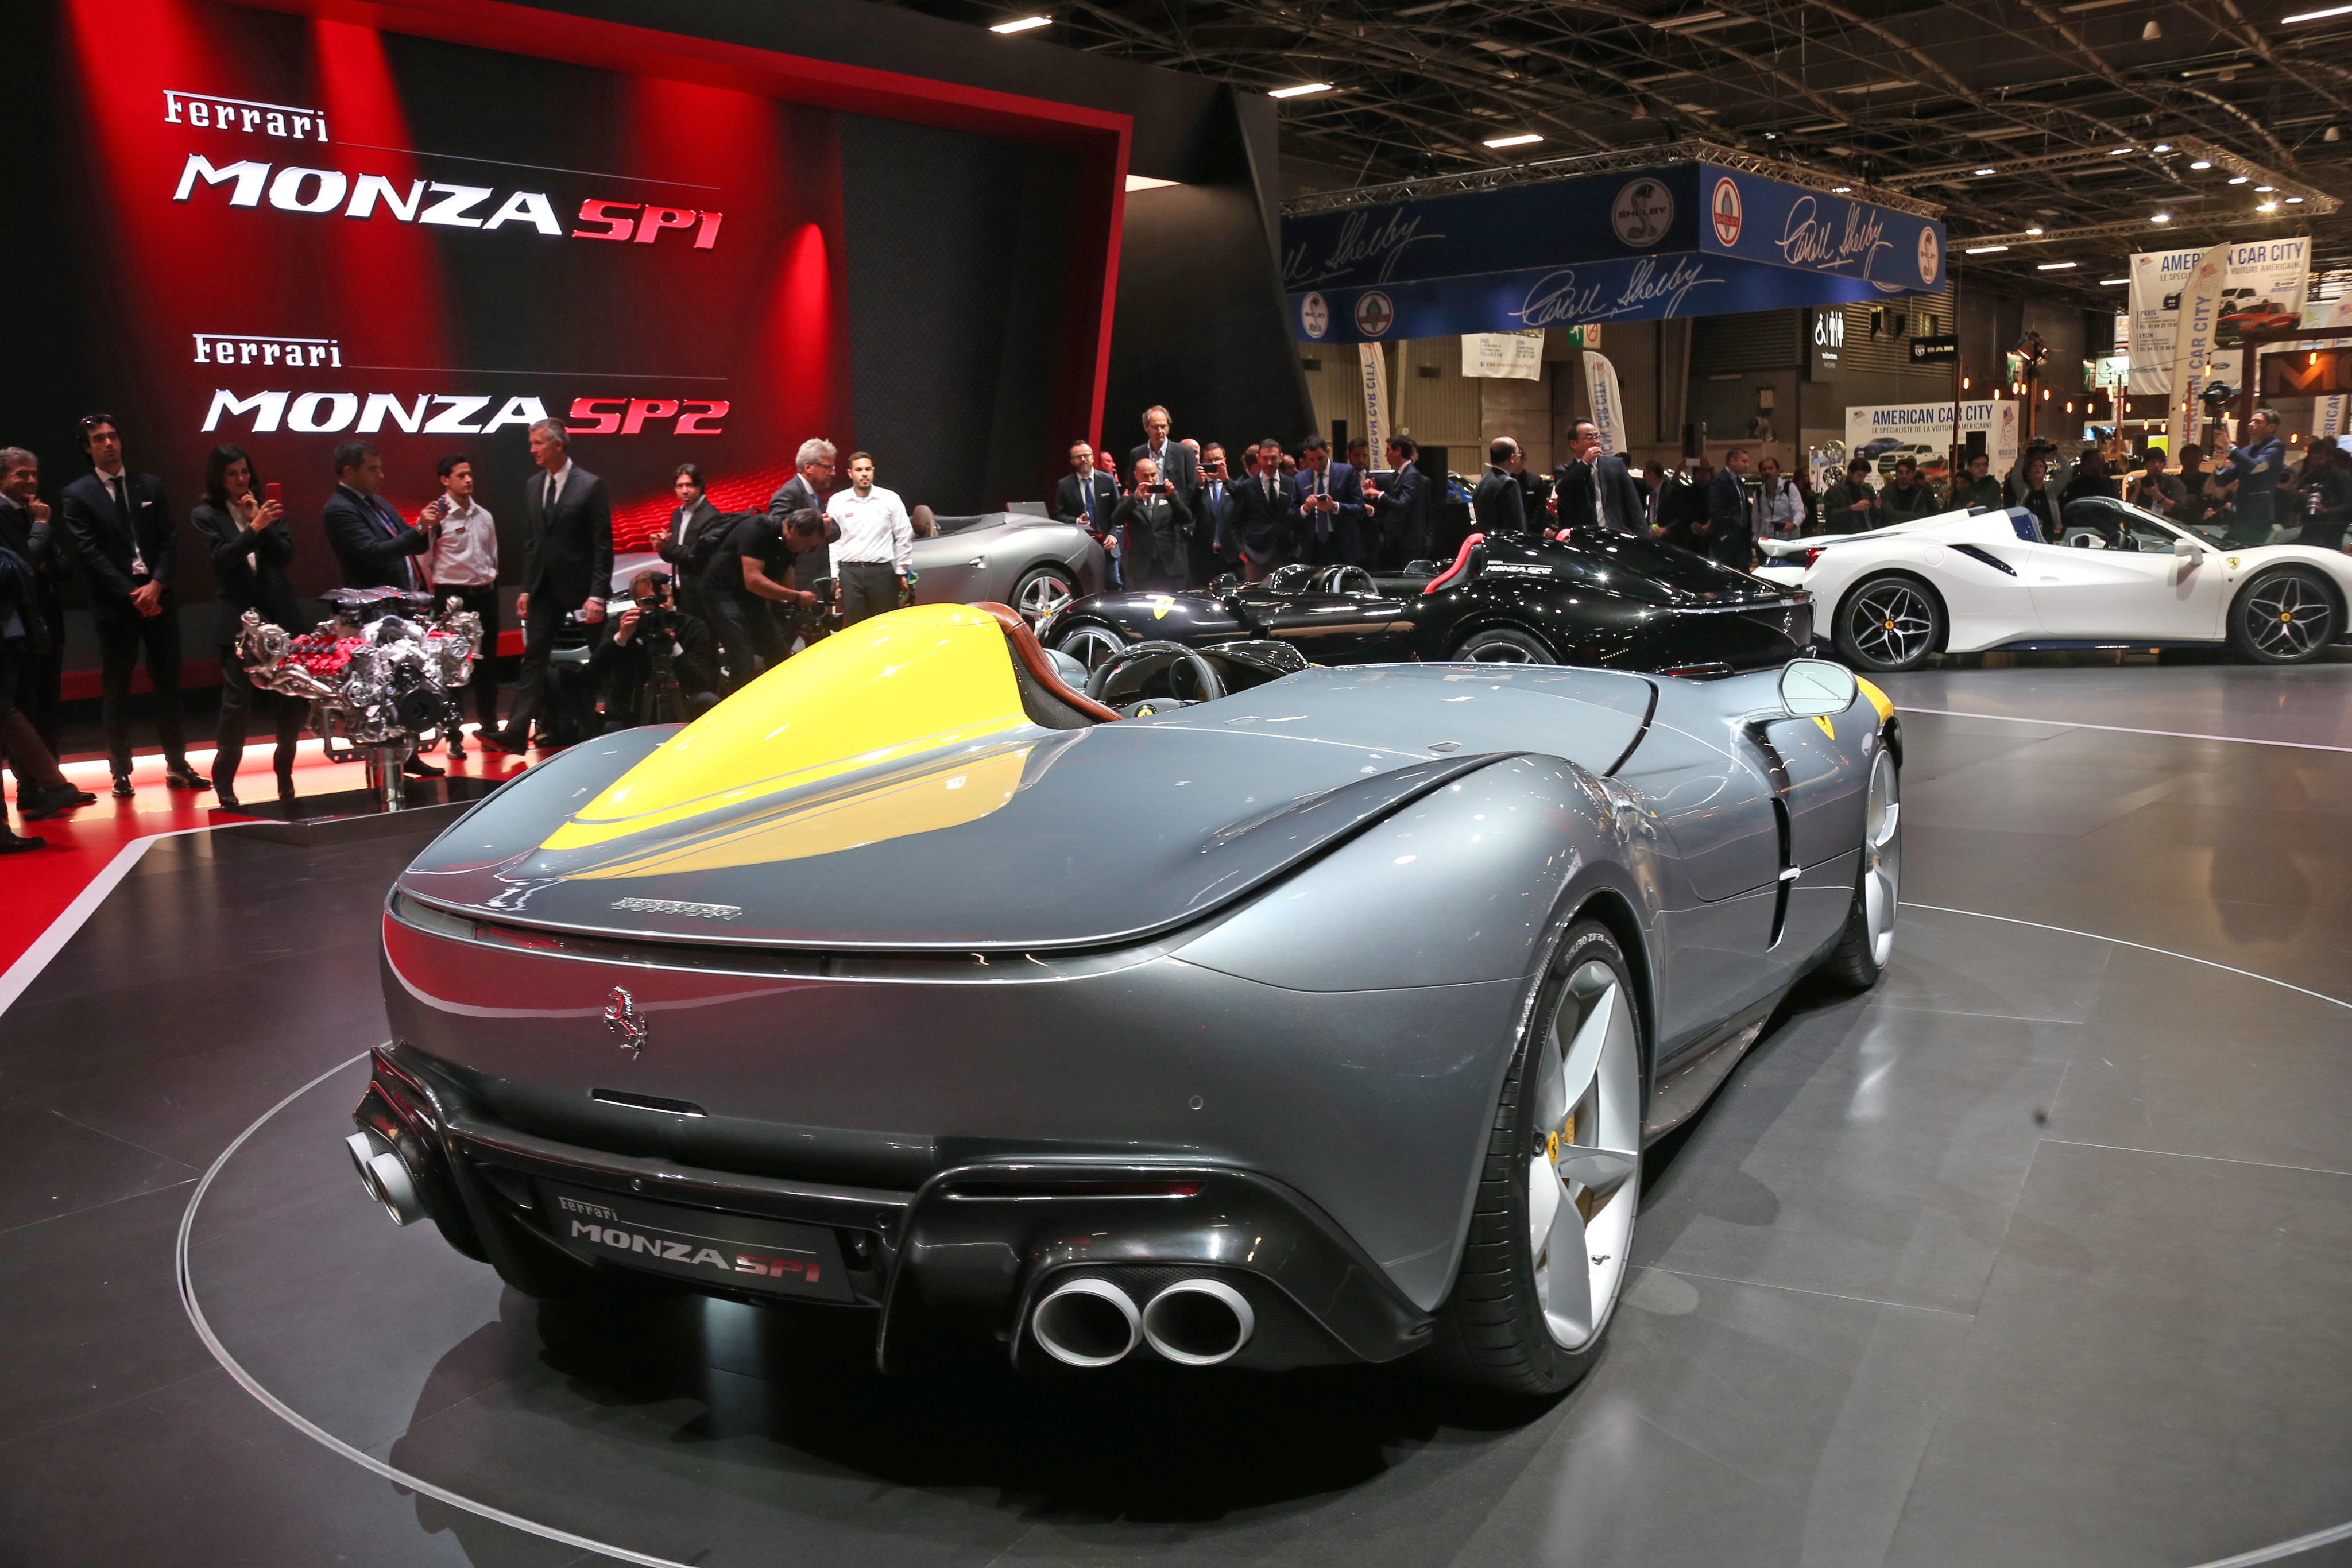 180989-car-ferrari-motor-show-paris